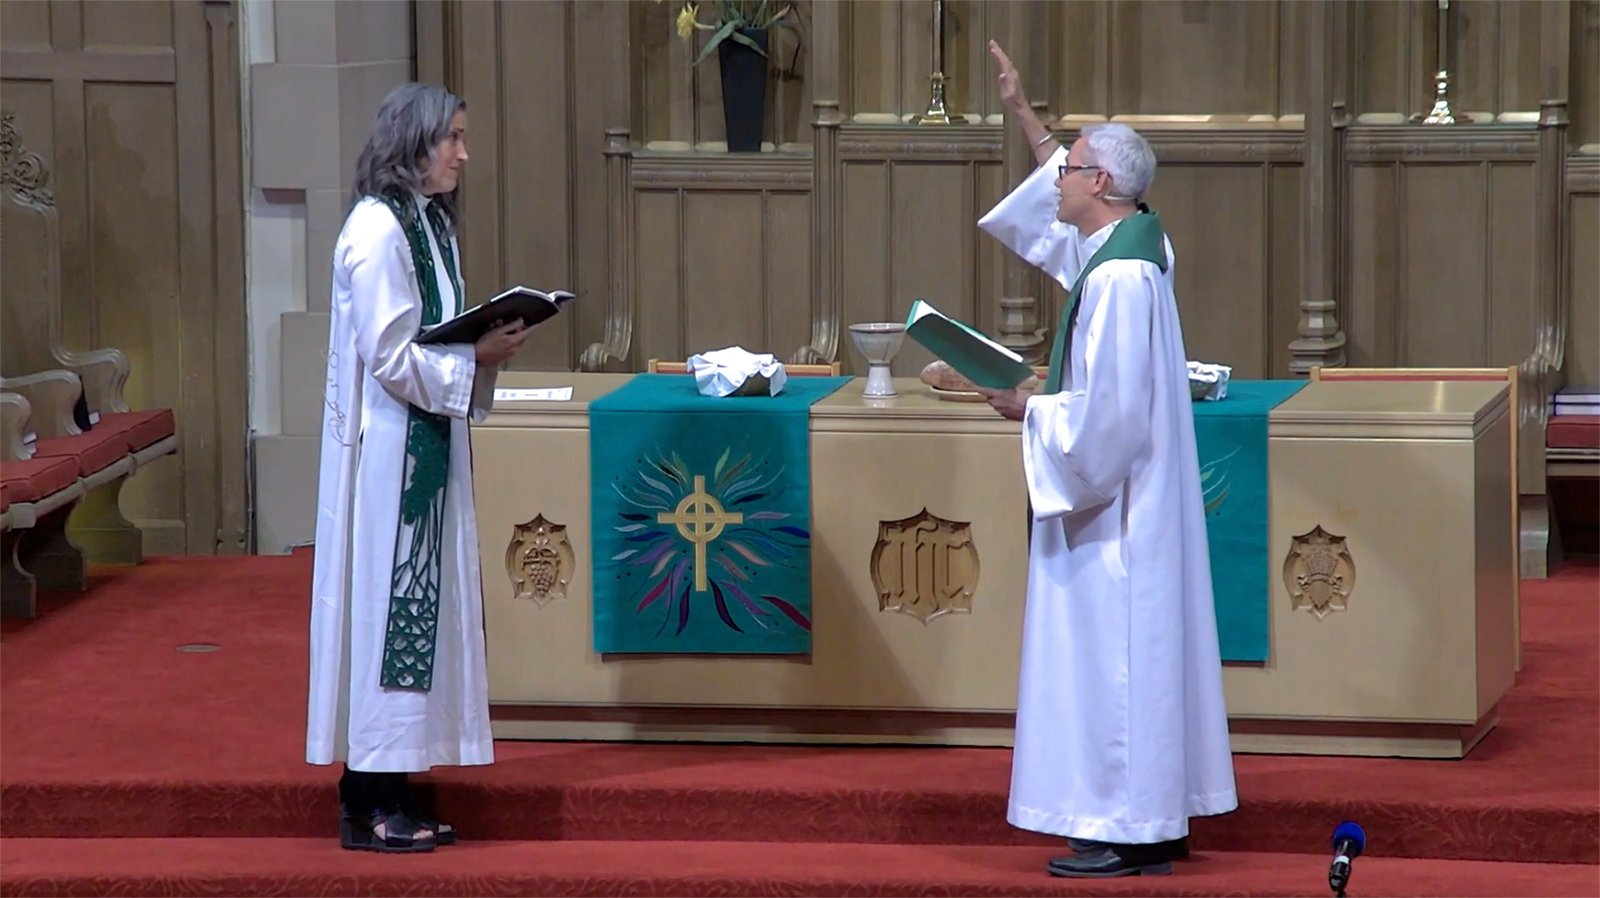 The Rev. Nadia Bolz-Weber, left, is installed as Pastor of Public Witness, Friday, Aug. 20, 2021, by Bishop Jim Gonia, right, of the Rocky Mountain Synod of the ELCA, in a service at Montview Boulevard Presbyterian Church in Denver, Colorado. Video screengrab